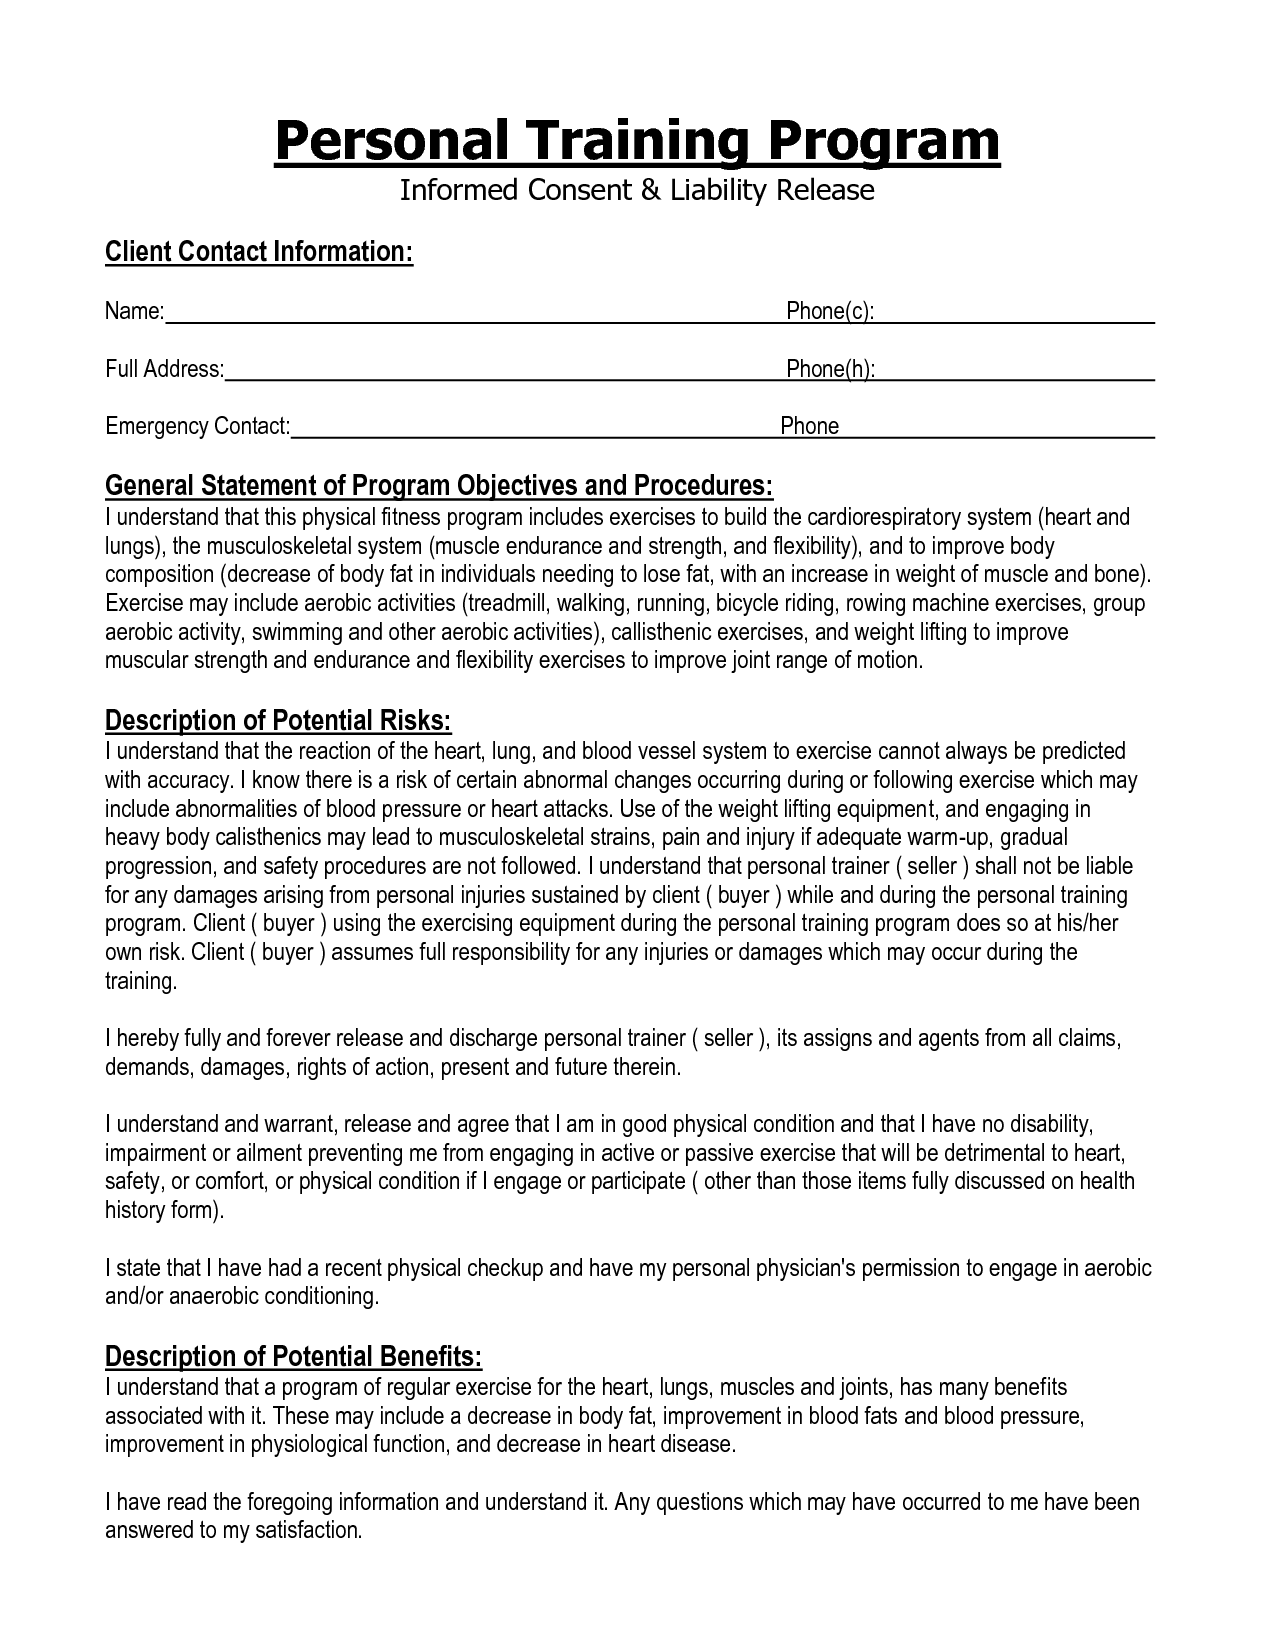 informed consent form personal training google search health and